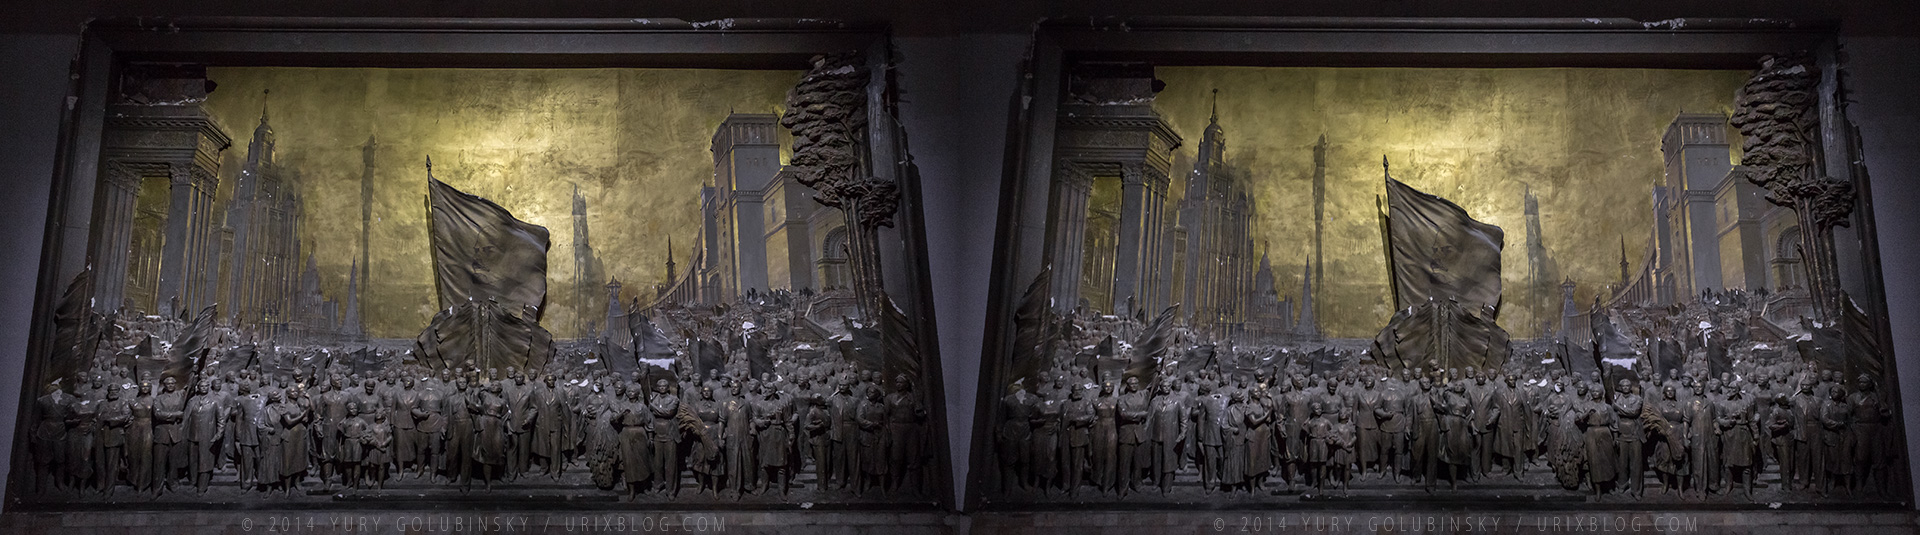 2014, Central pavilion, Yevgeny Vuchetich, high relief, VDNKh, VVTs, VSKhV, Moscow, Russia, 3D, stereo pair, cross-eyed, crossview, cross view stereo pair, stereoscopic